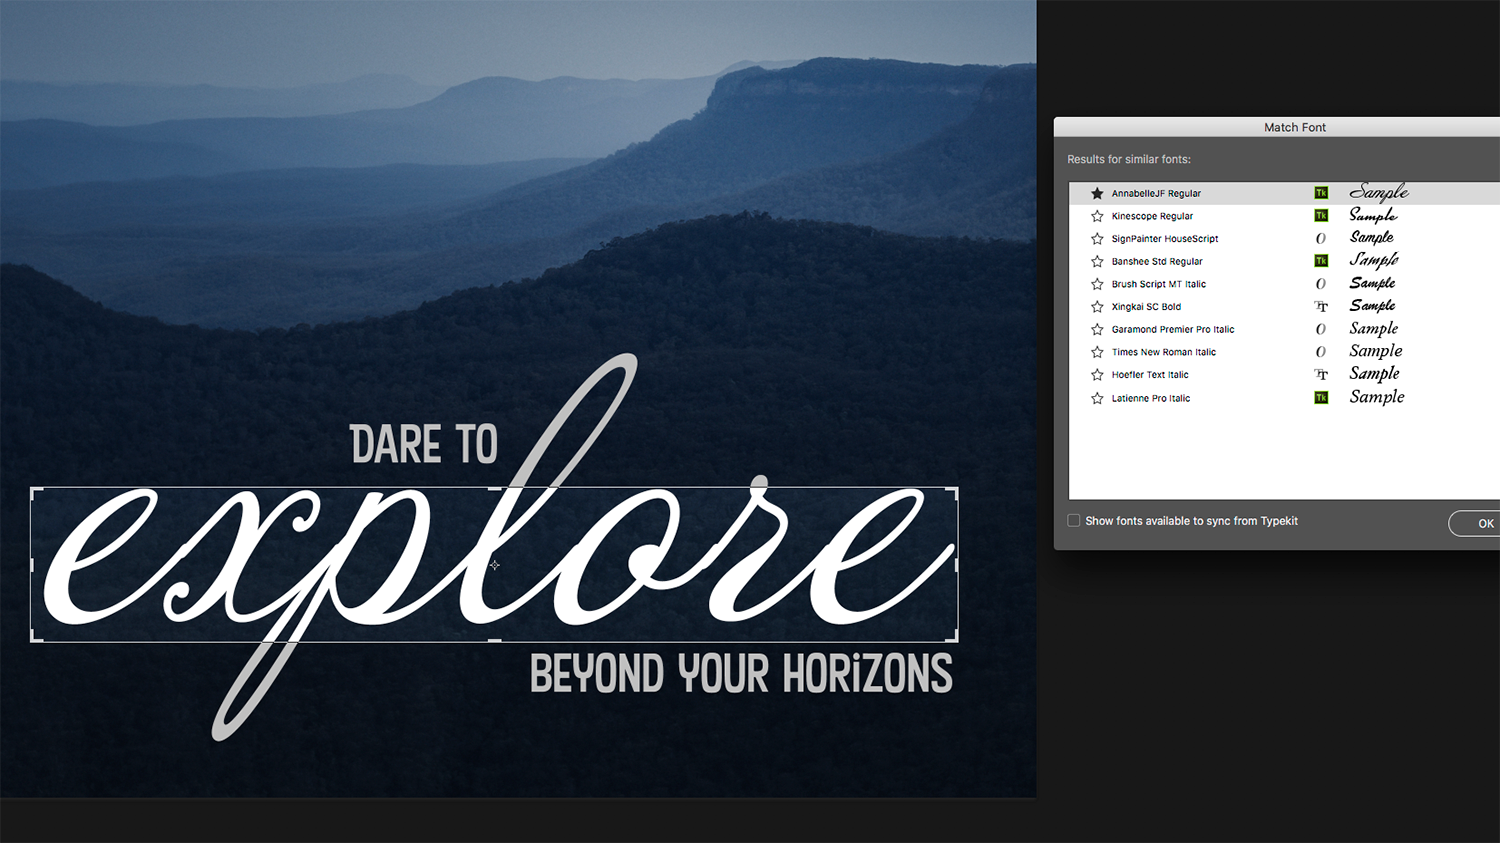 Photoshop tutorial: How to use Photoshop's new Match Font tool to